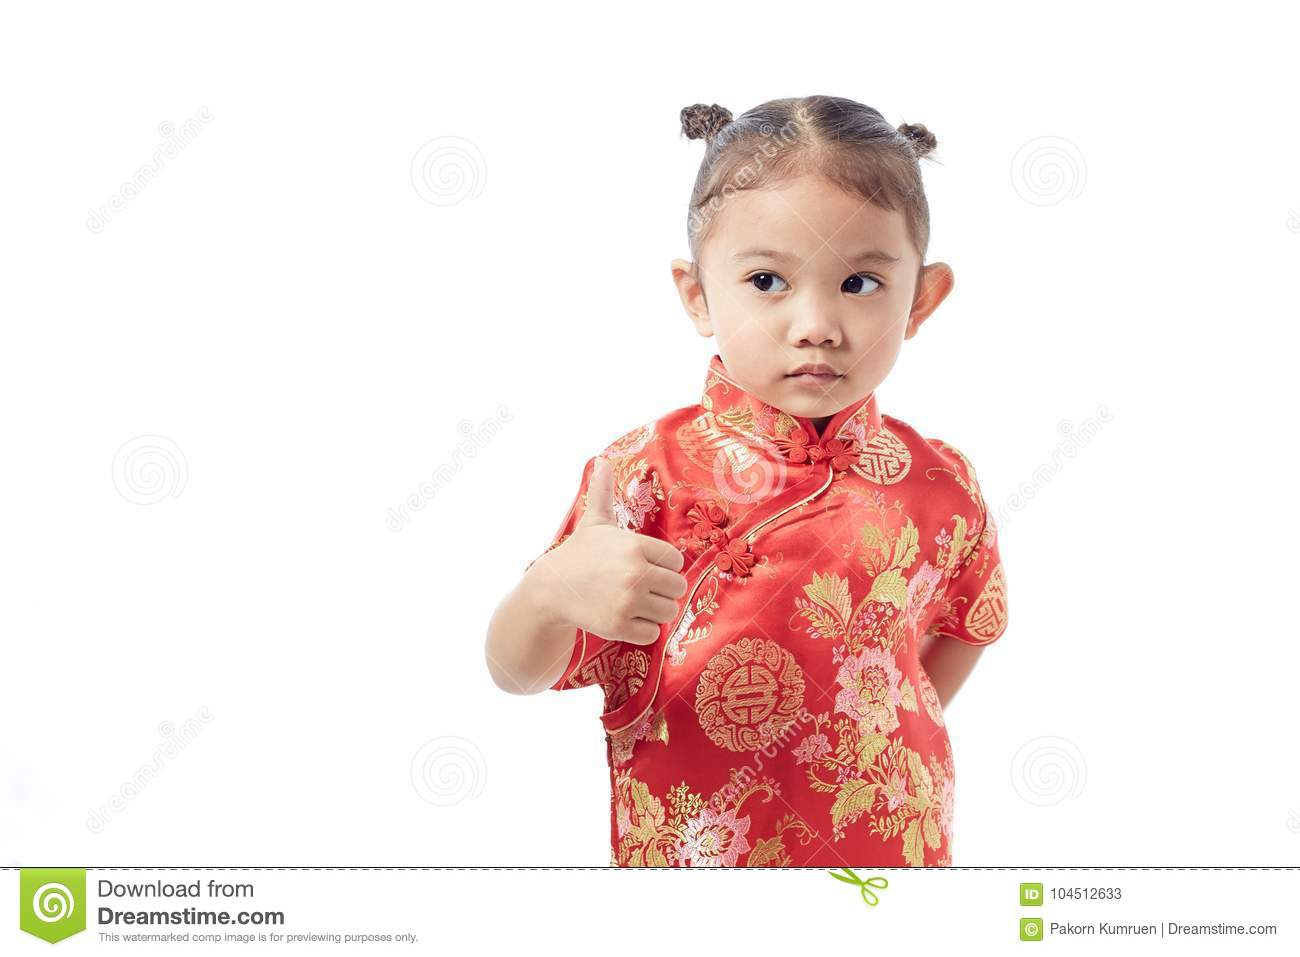 d4967432f60fa Cute Girl Wearing Red Chinese Suit Stock Image - Image of child ...